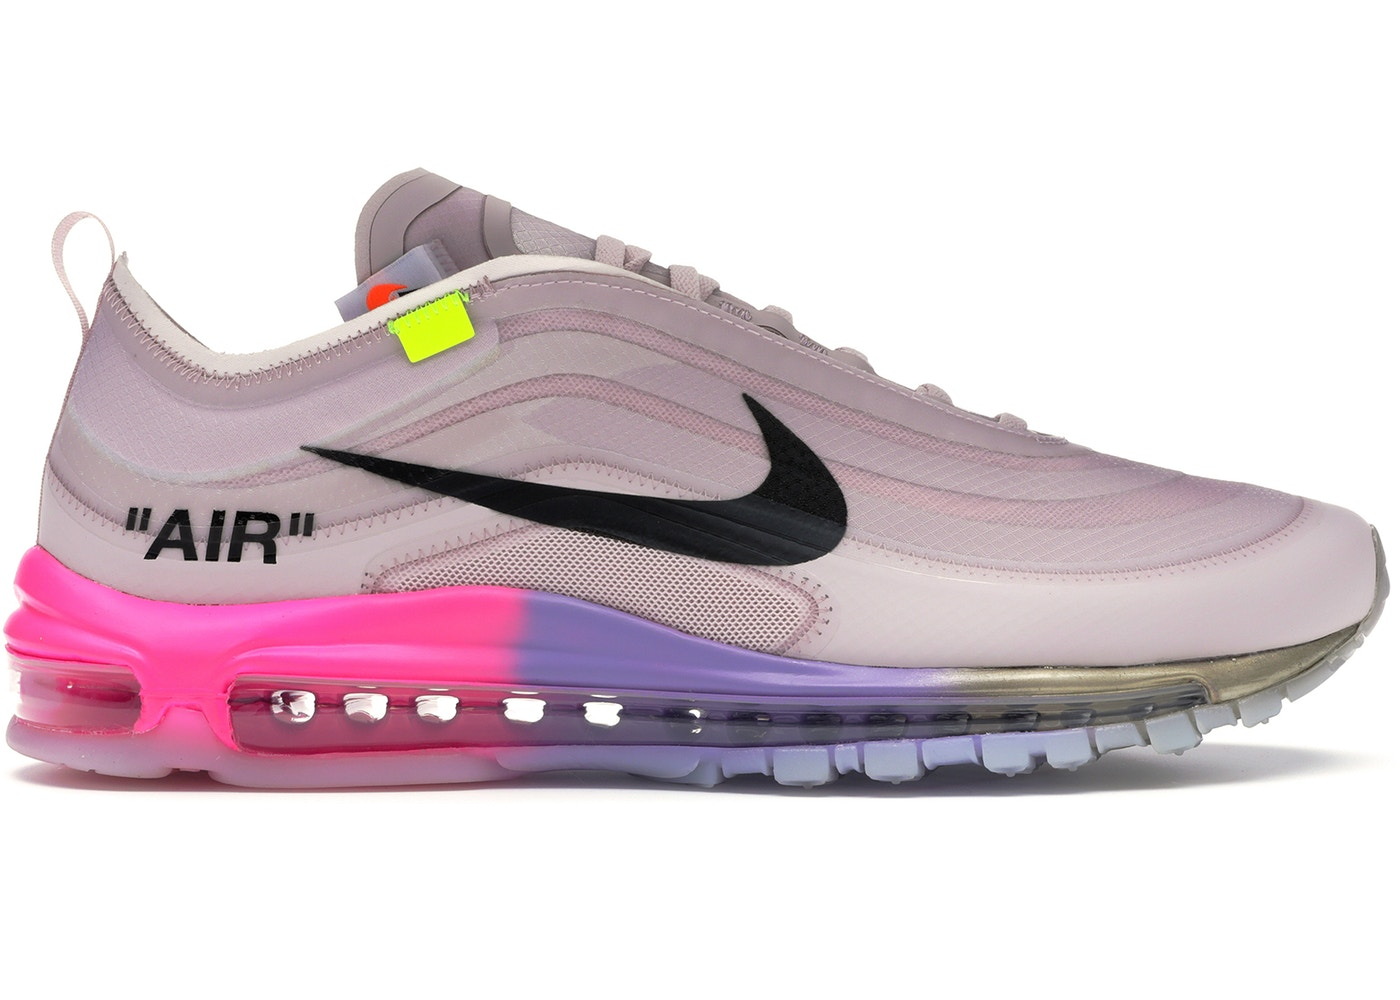 bas prix d7ab5 a681a Air Max 97 Off-White Elemental Rose Serena